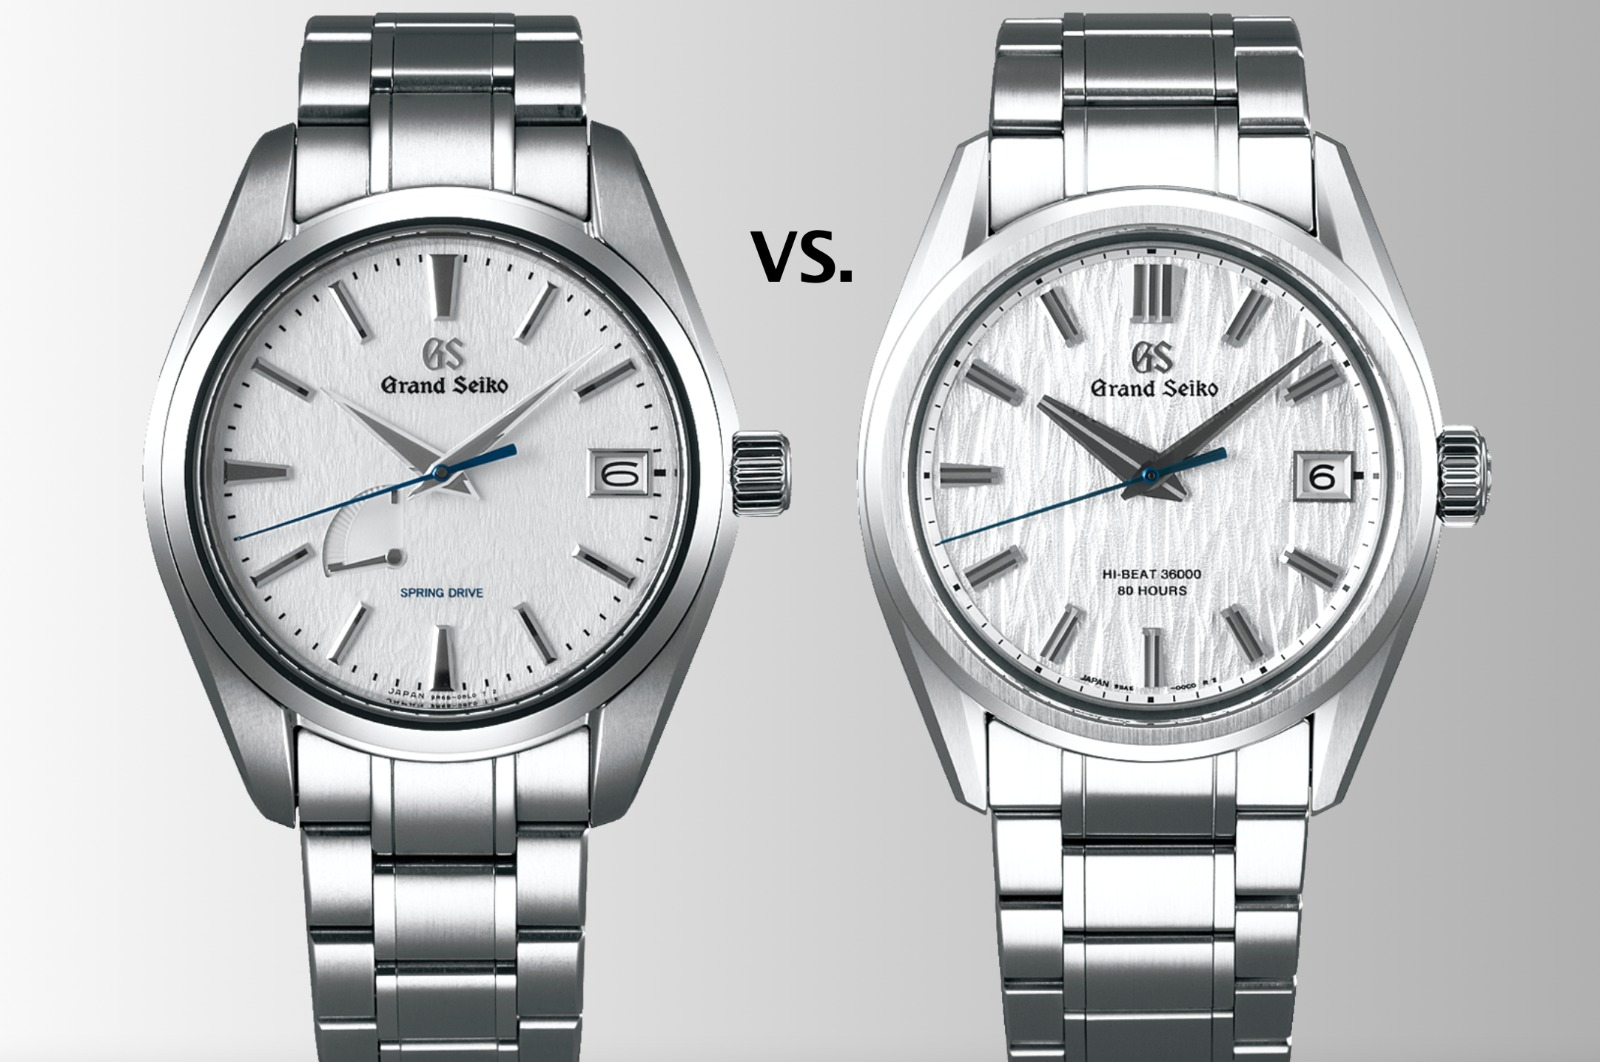 Grand Seiko Snowflake versus White Birch: the battle between the classic and contender